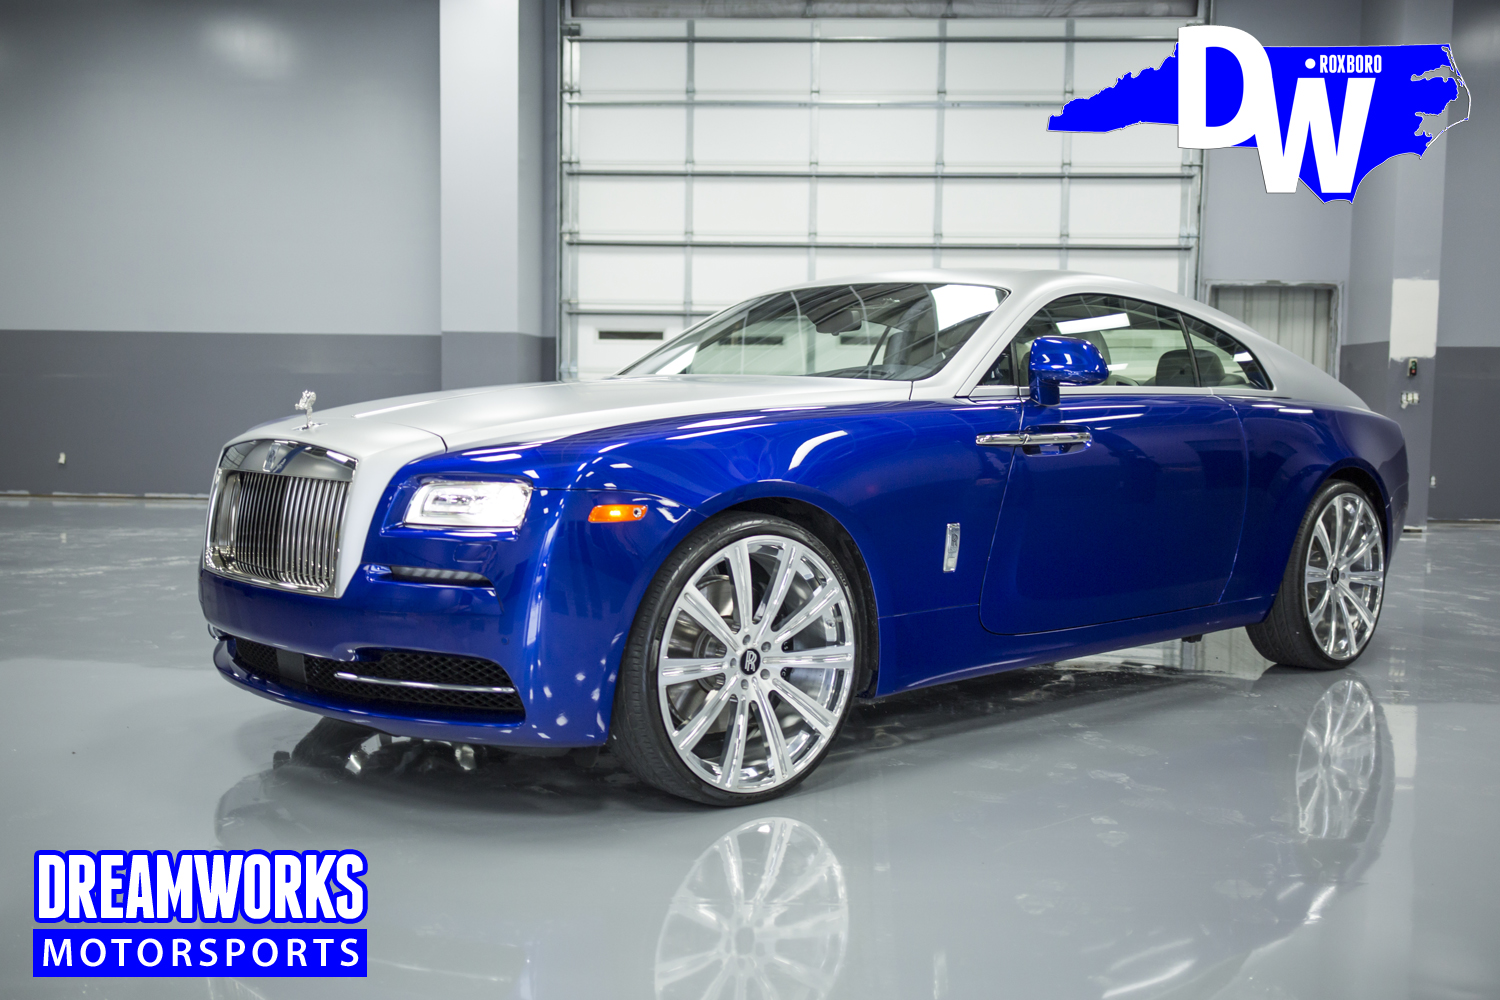 Mario-Williams-NFL-Houston-Texans-Buffalo-Bills-Miami-Dolphins-NC-State-Wolfpack-Rolls-Royce-Wraith-by-Dreamworks-Motorsports